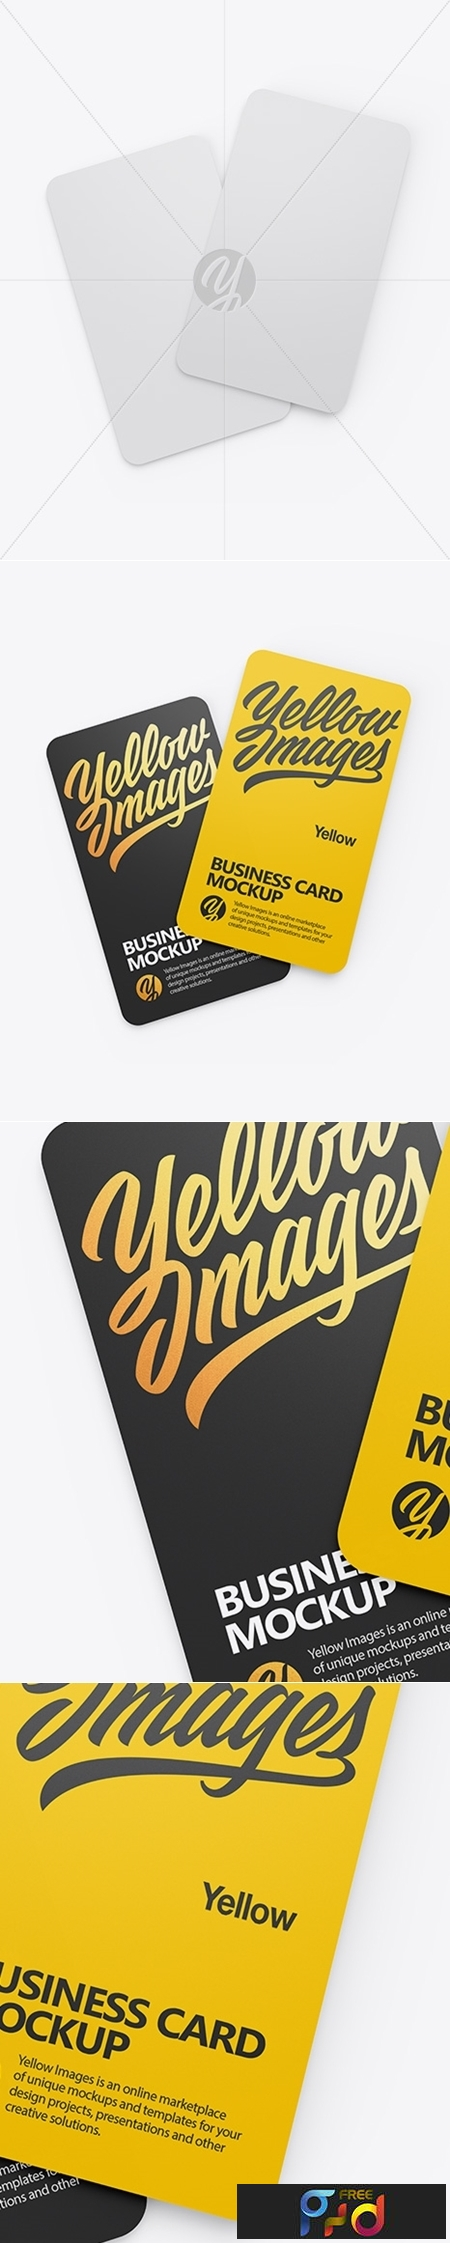 Business Cards Mockup 43238 1